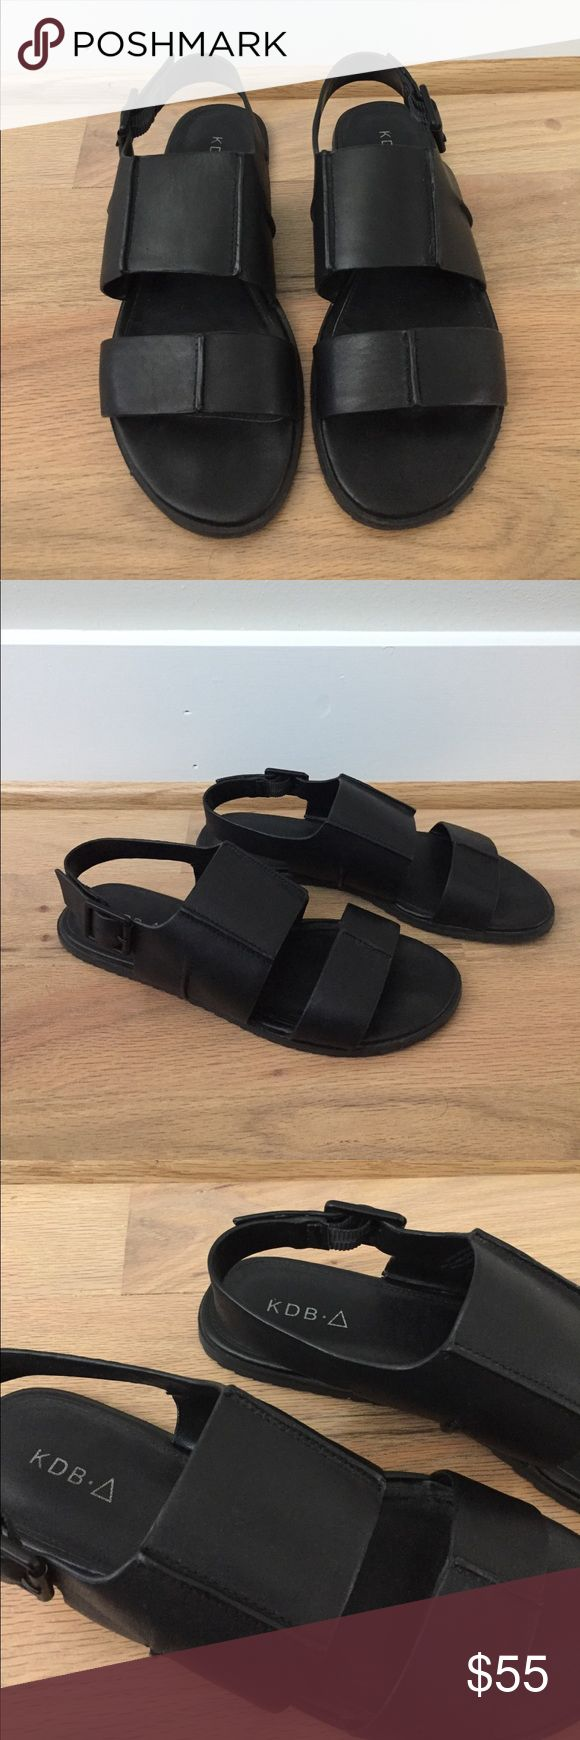 Kelsi Dagger Brooklyn Sandals These sling back flat sandals from Kelsi Dagger are the epitome of cool! True to size, goes with skinny jeans or even dresses, only worn a couple of times. Will also accept best offers. Kelsi Dagger Shoes Sandals